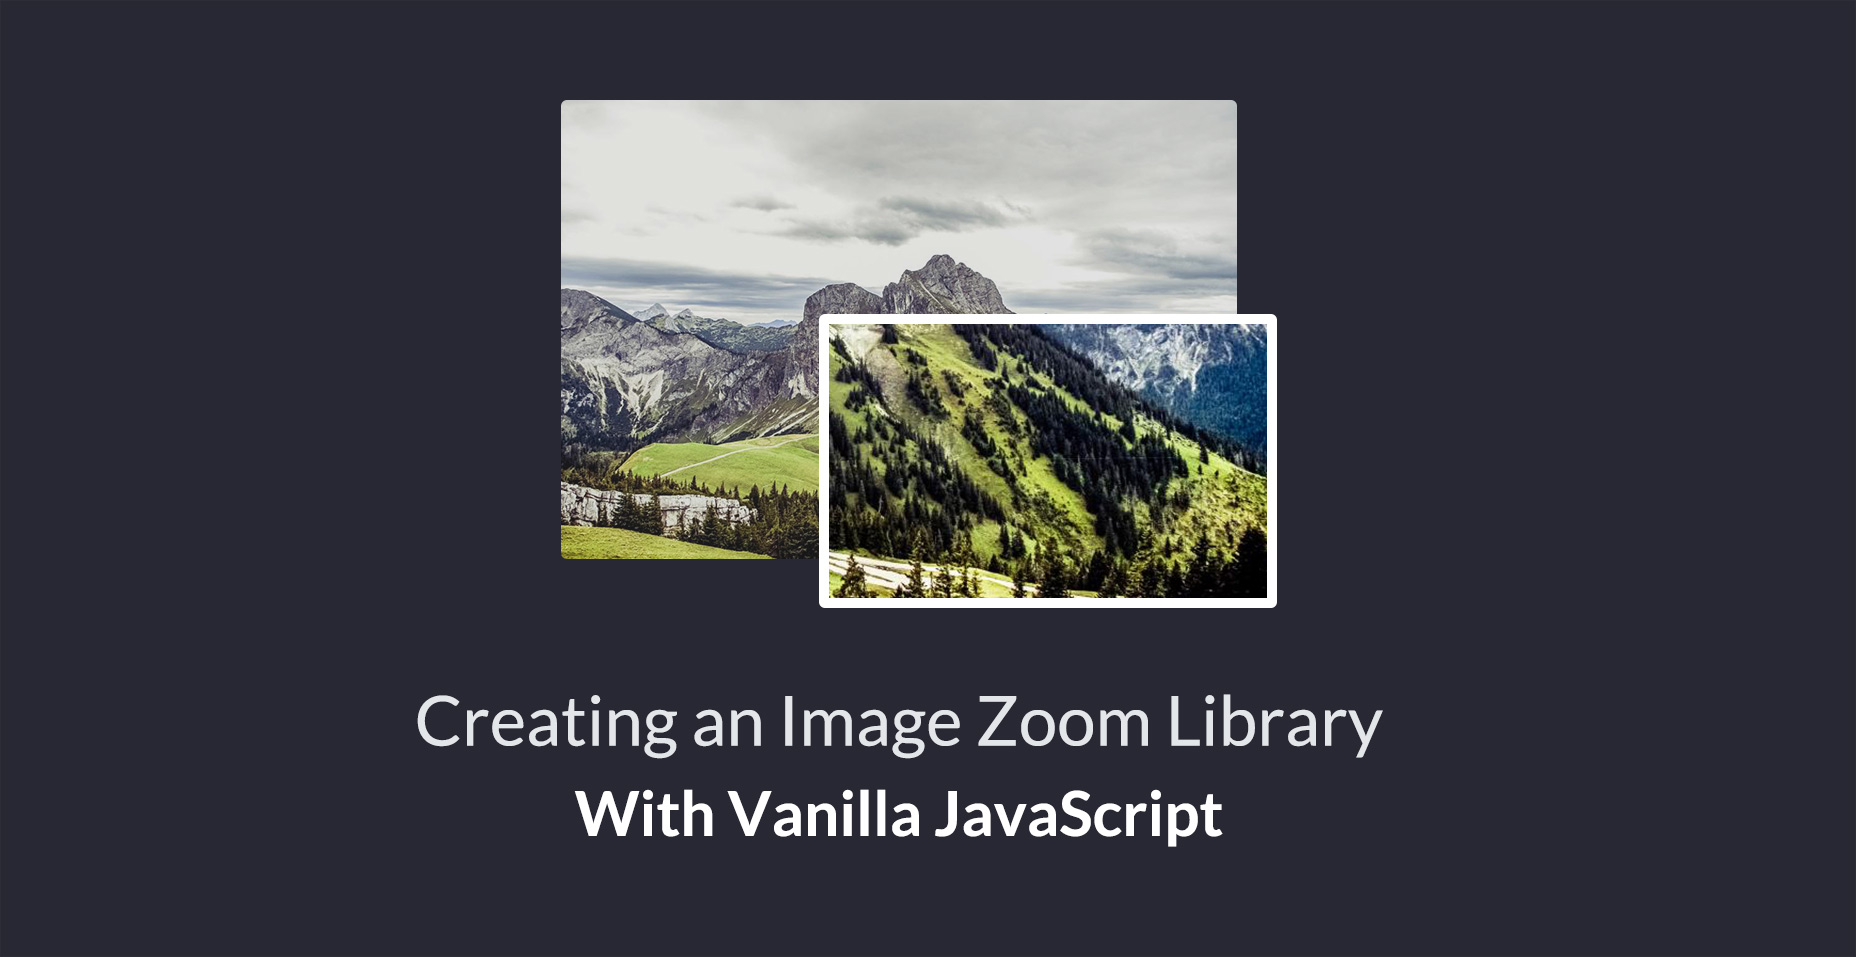 Zoomable image react native